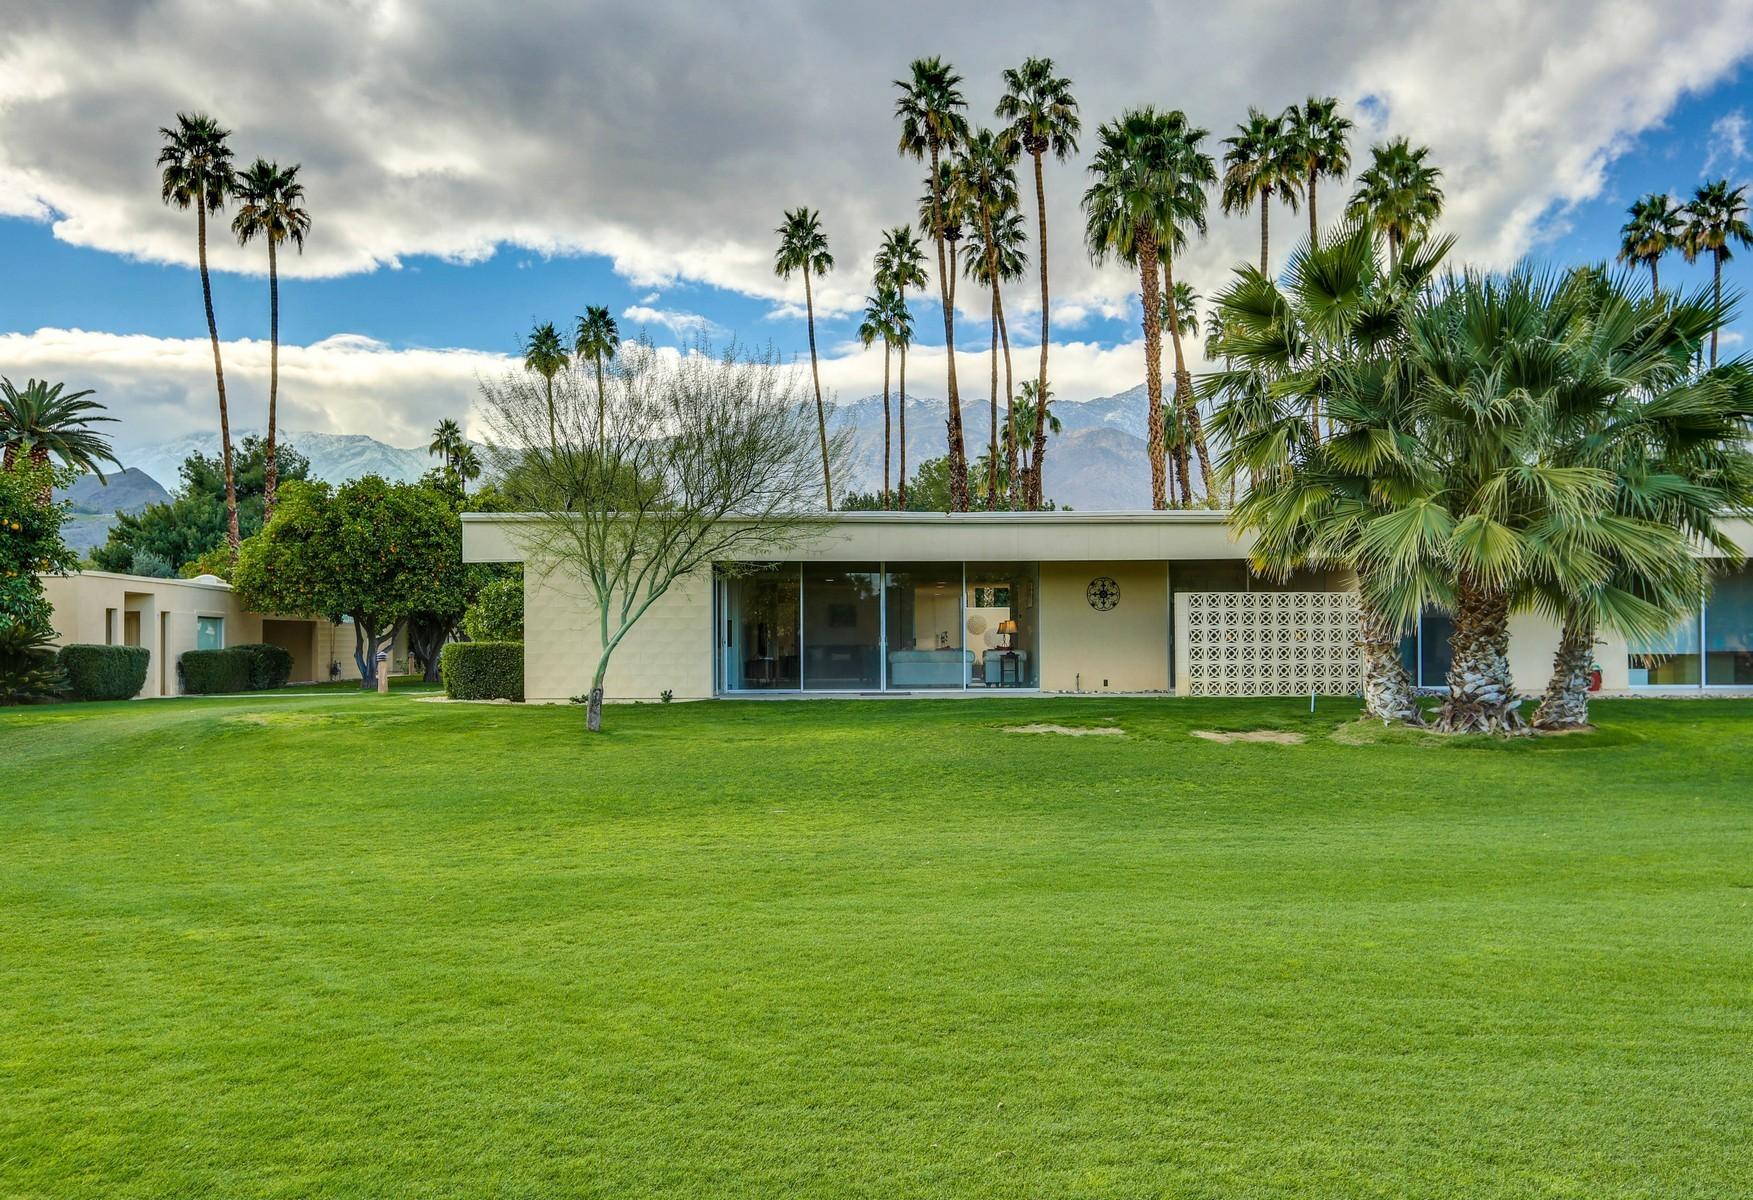 Condominium for Sale at 50 Lakeview Drive Palm Springs, California, 92264 United States